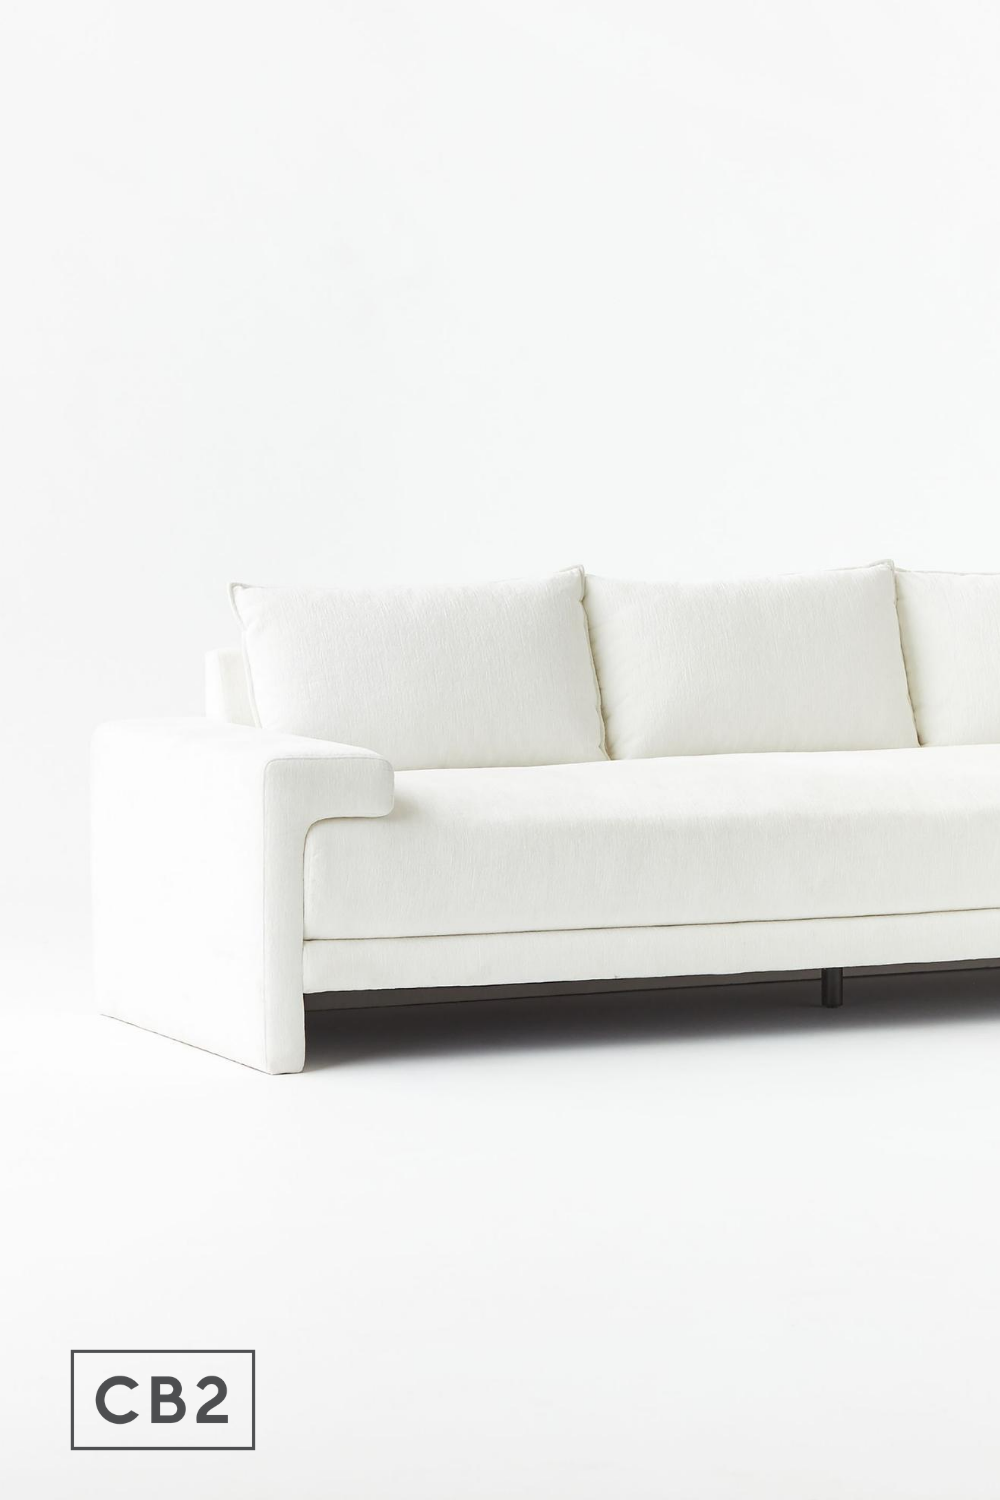 Camden White Sofa Reviews Cb2 In 2020 Sofa White Sofas Living Room Furniture Sofas